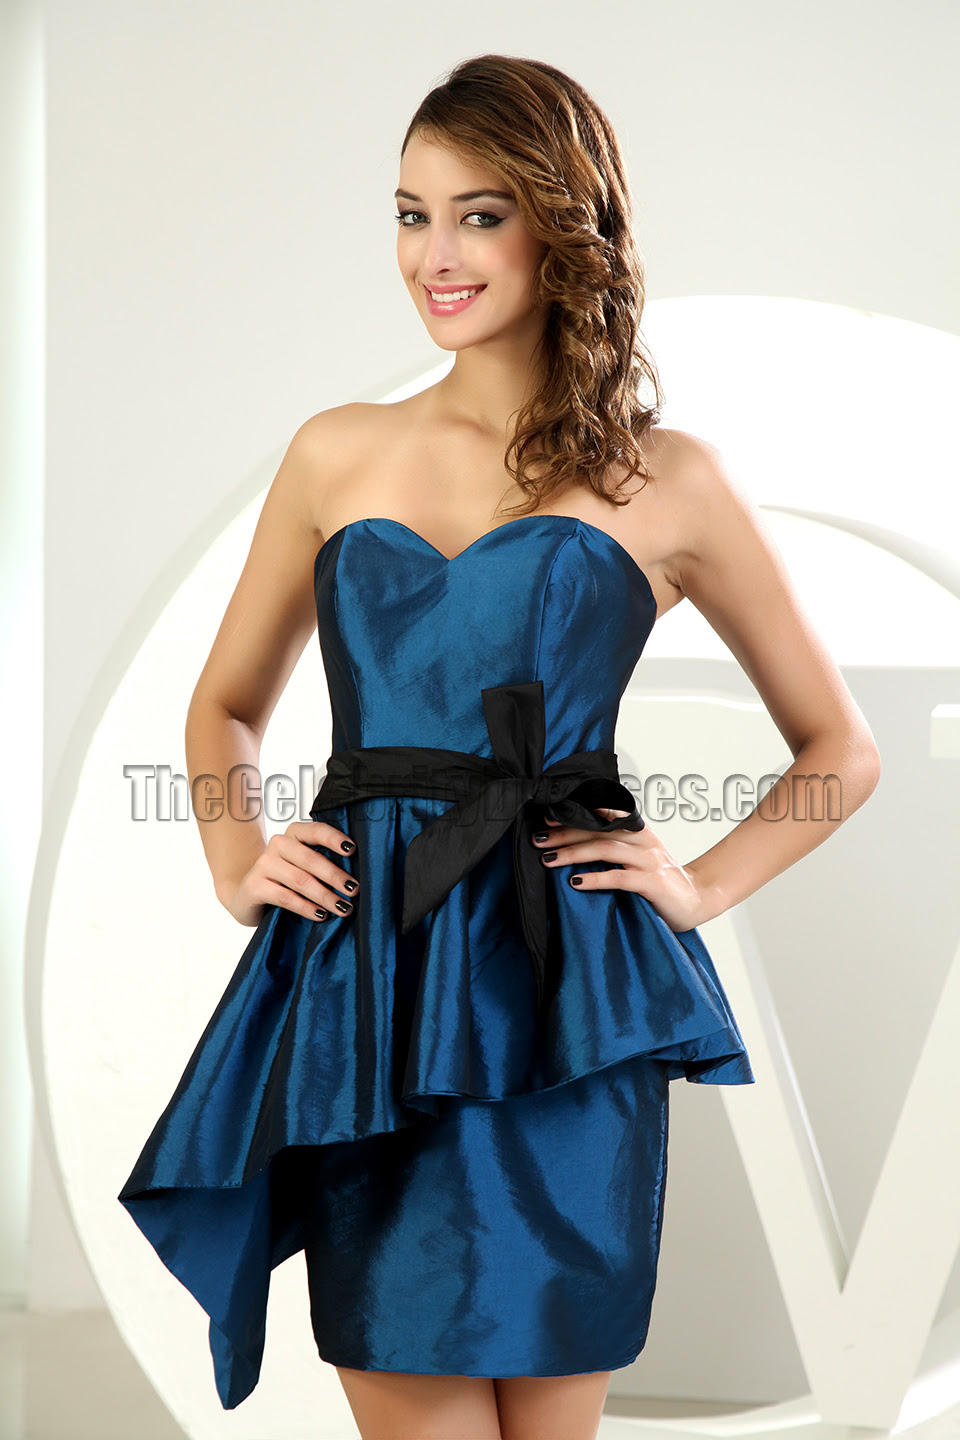 new style short mini strapless cocktail dress party